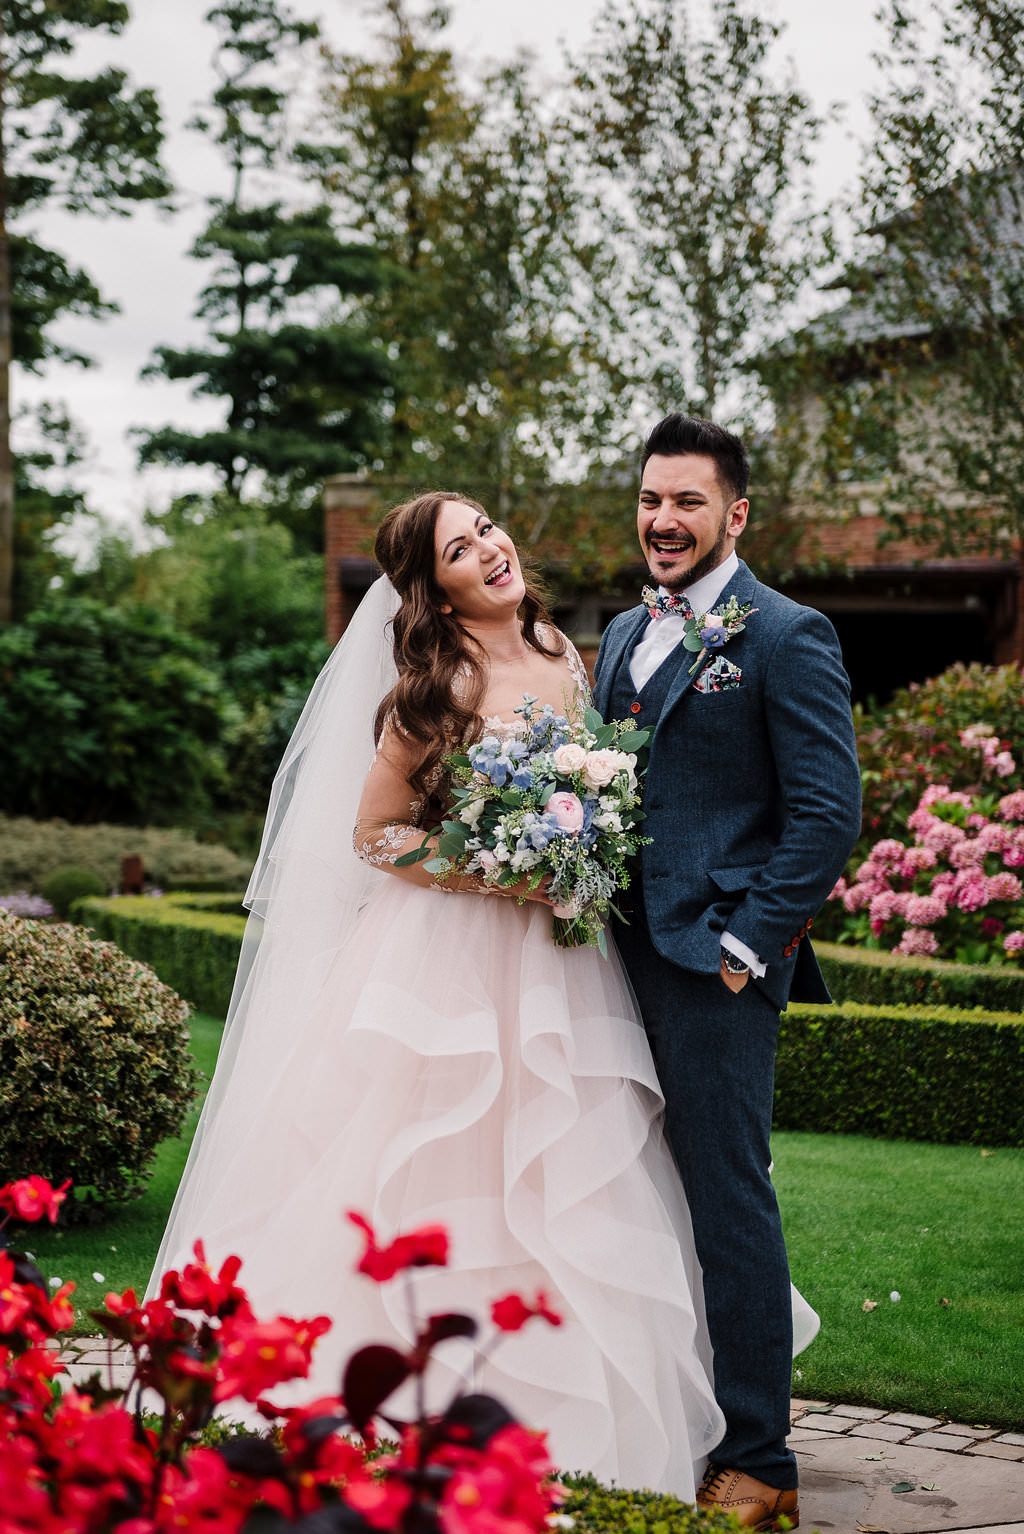 Colourful and relaxed portrait of bride and groom in the gardens at Stanley House Hotel.